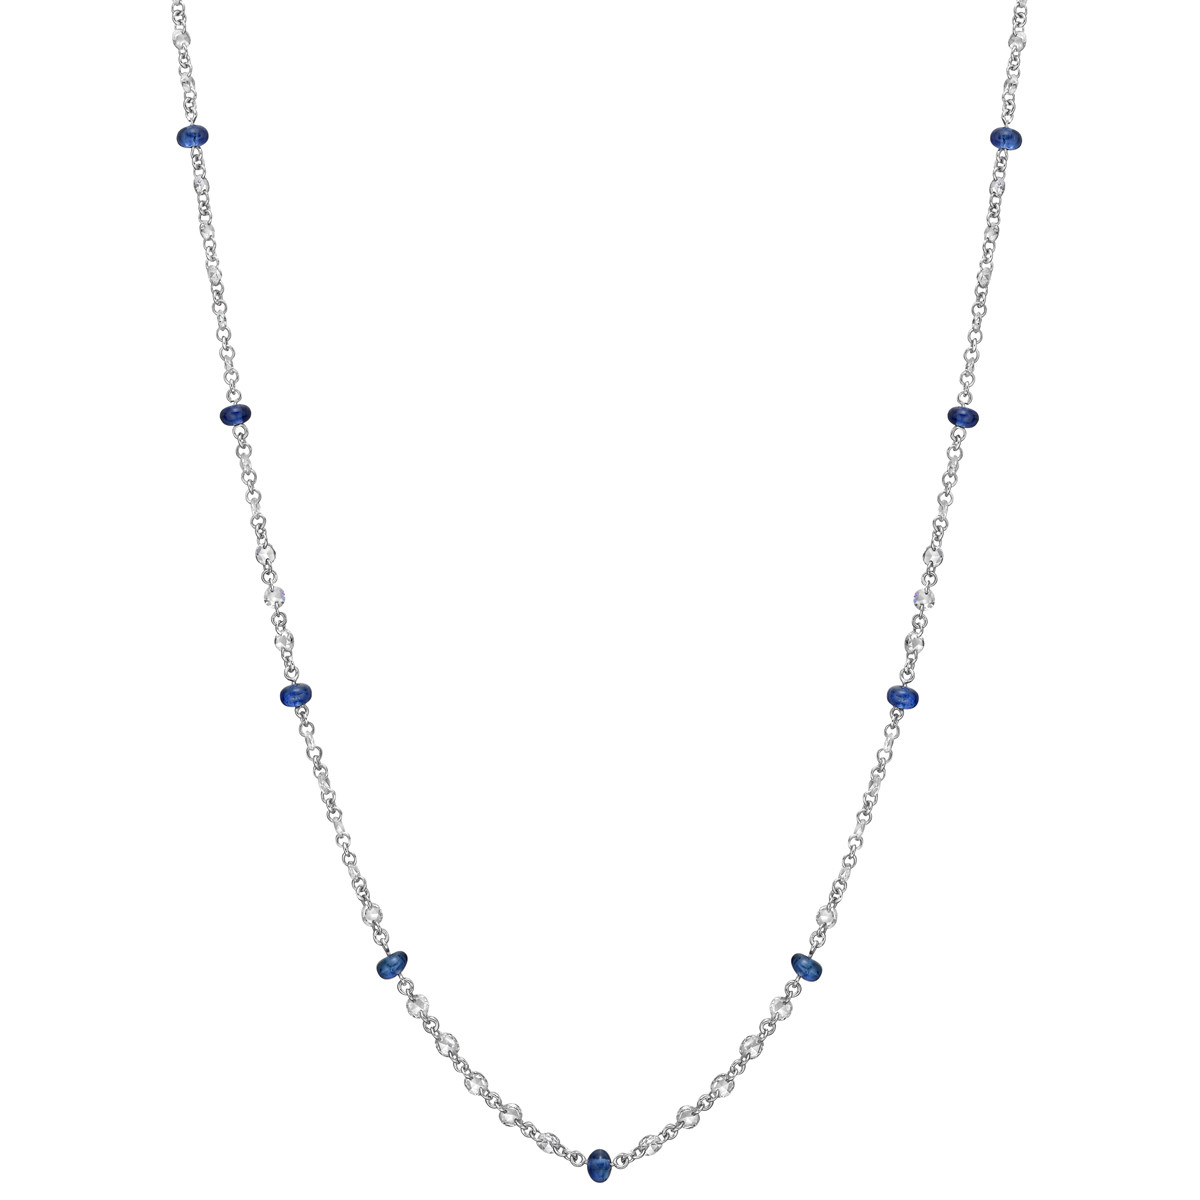 Sapphire Bead & Diamond Chain Necklace